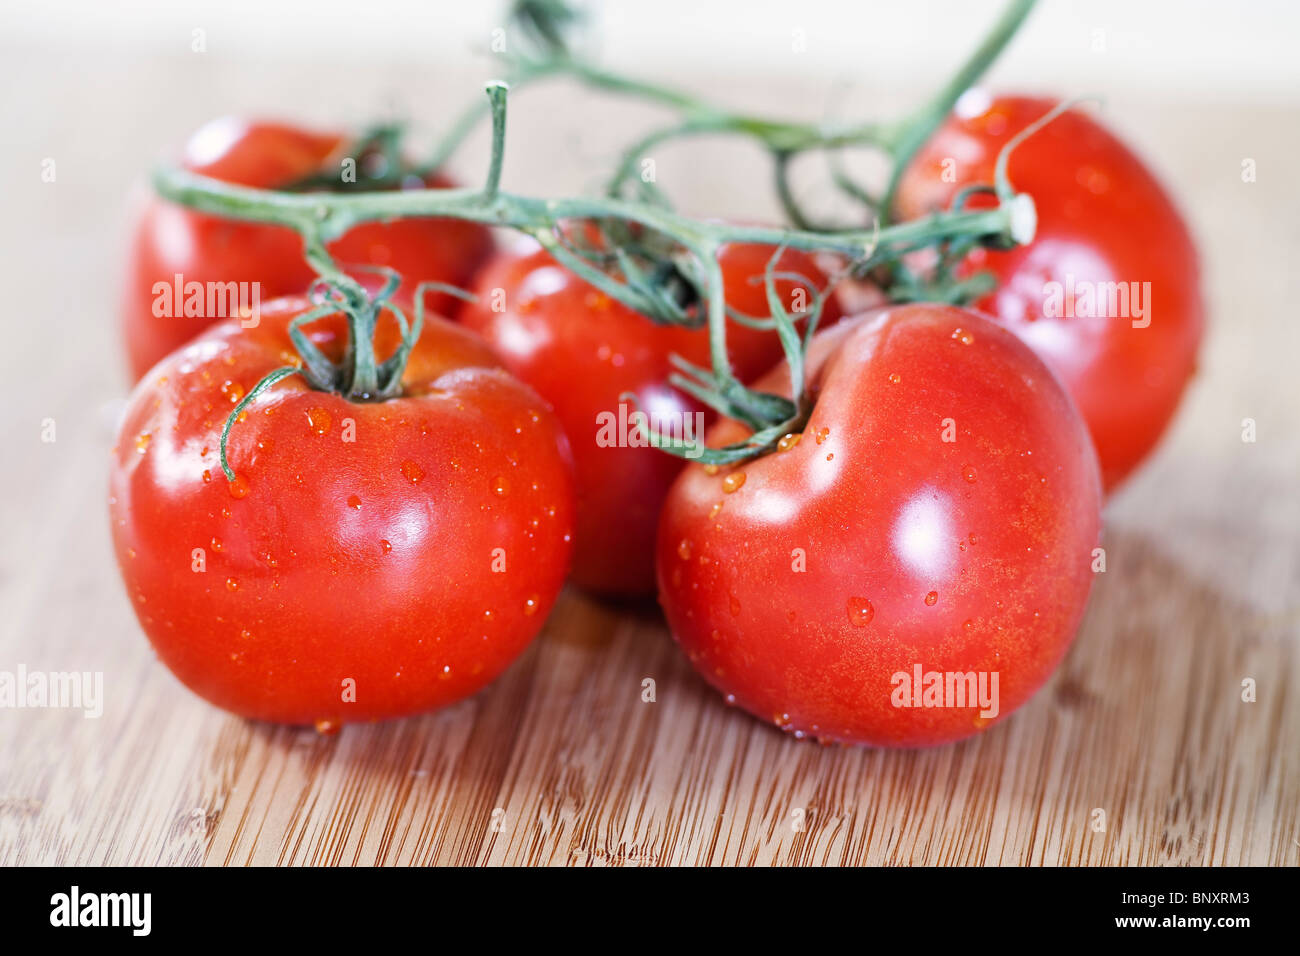 Vine ripened tomatoes on bamboo cutting board. - Stock Image